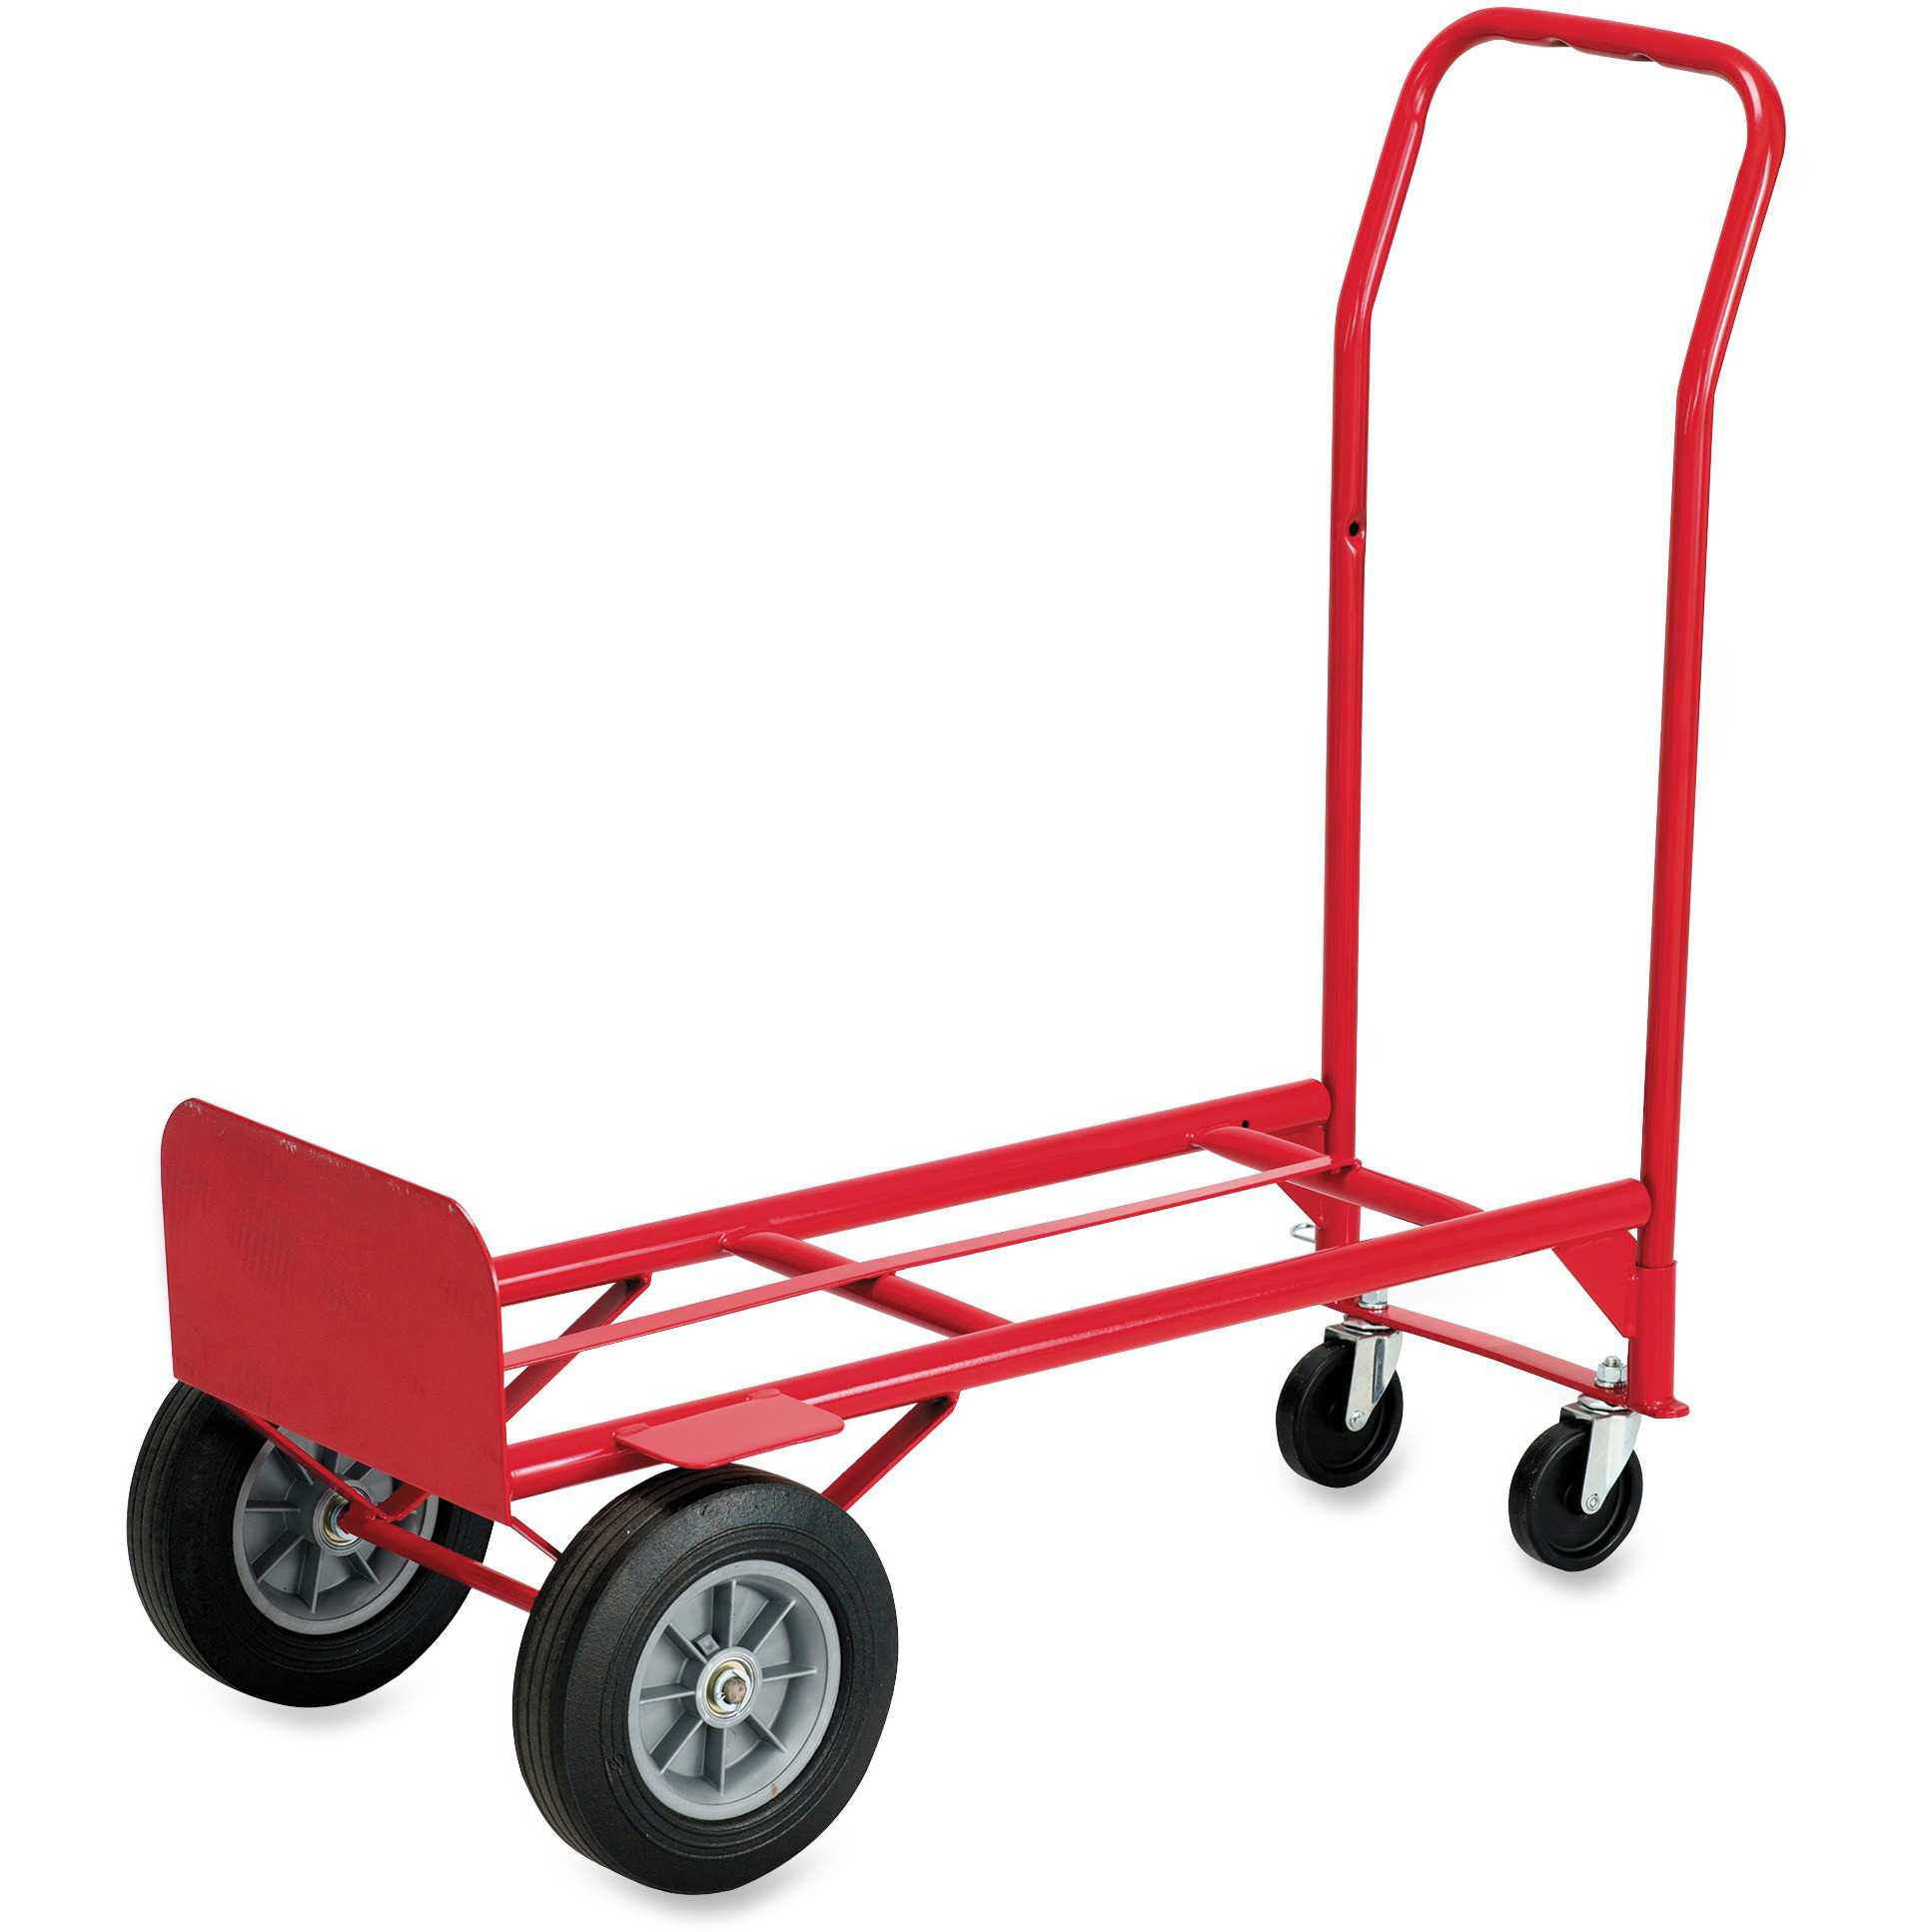 Safco Convertible Hand Truck, Red